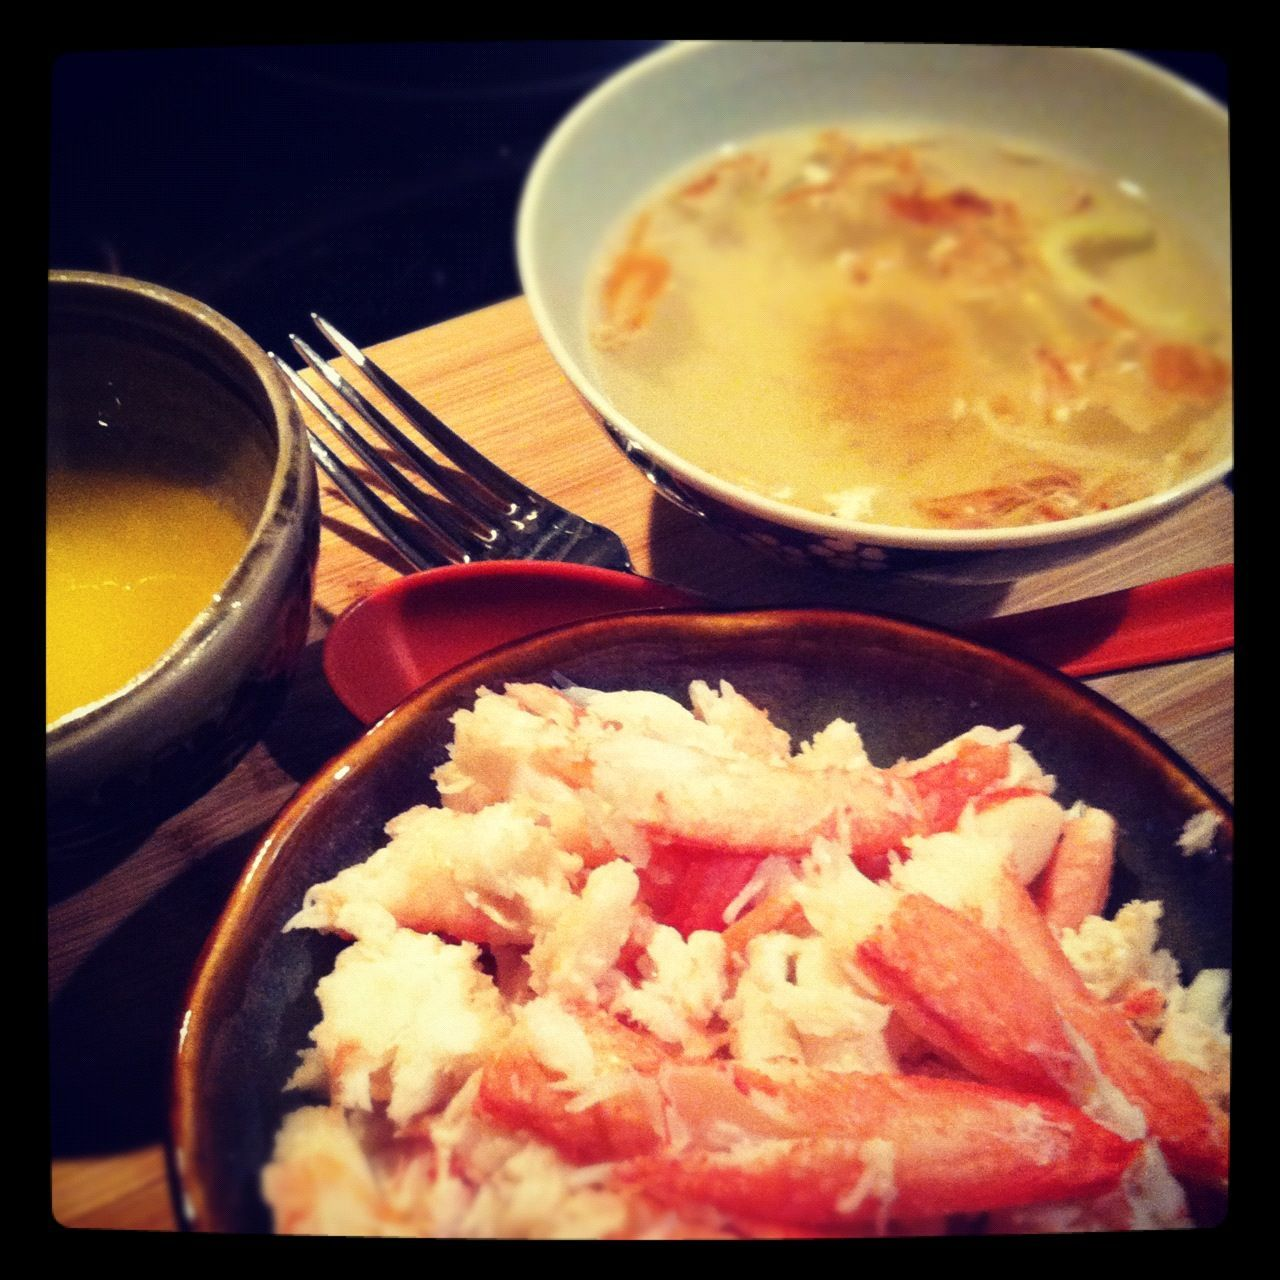 Friday night dinner:  snow crab leg with chicken broth   I got the snow crab leg...,  #broth ... #fridaynightdinner